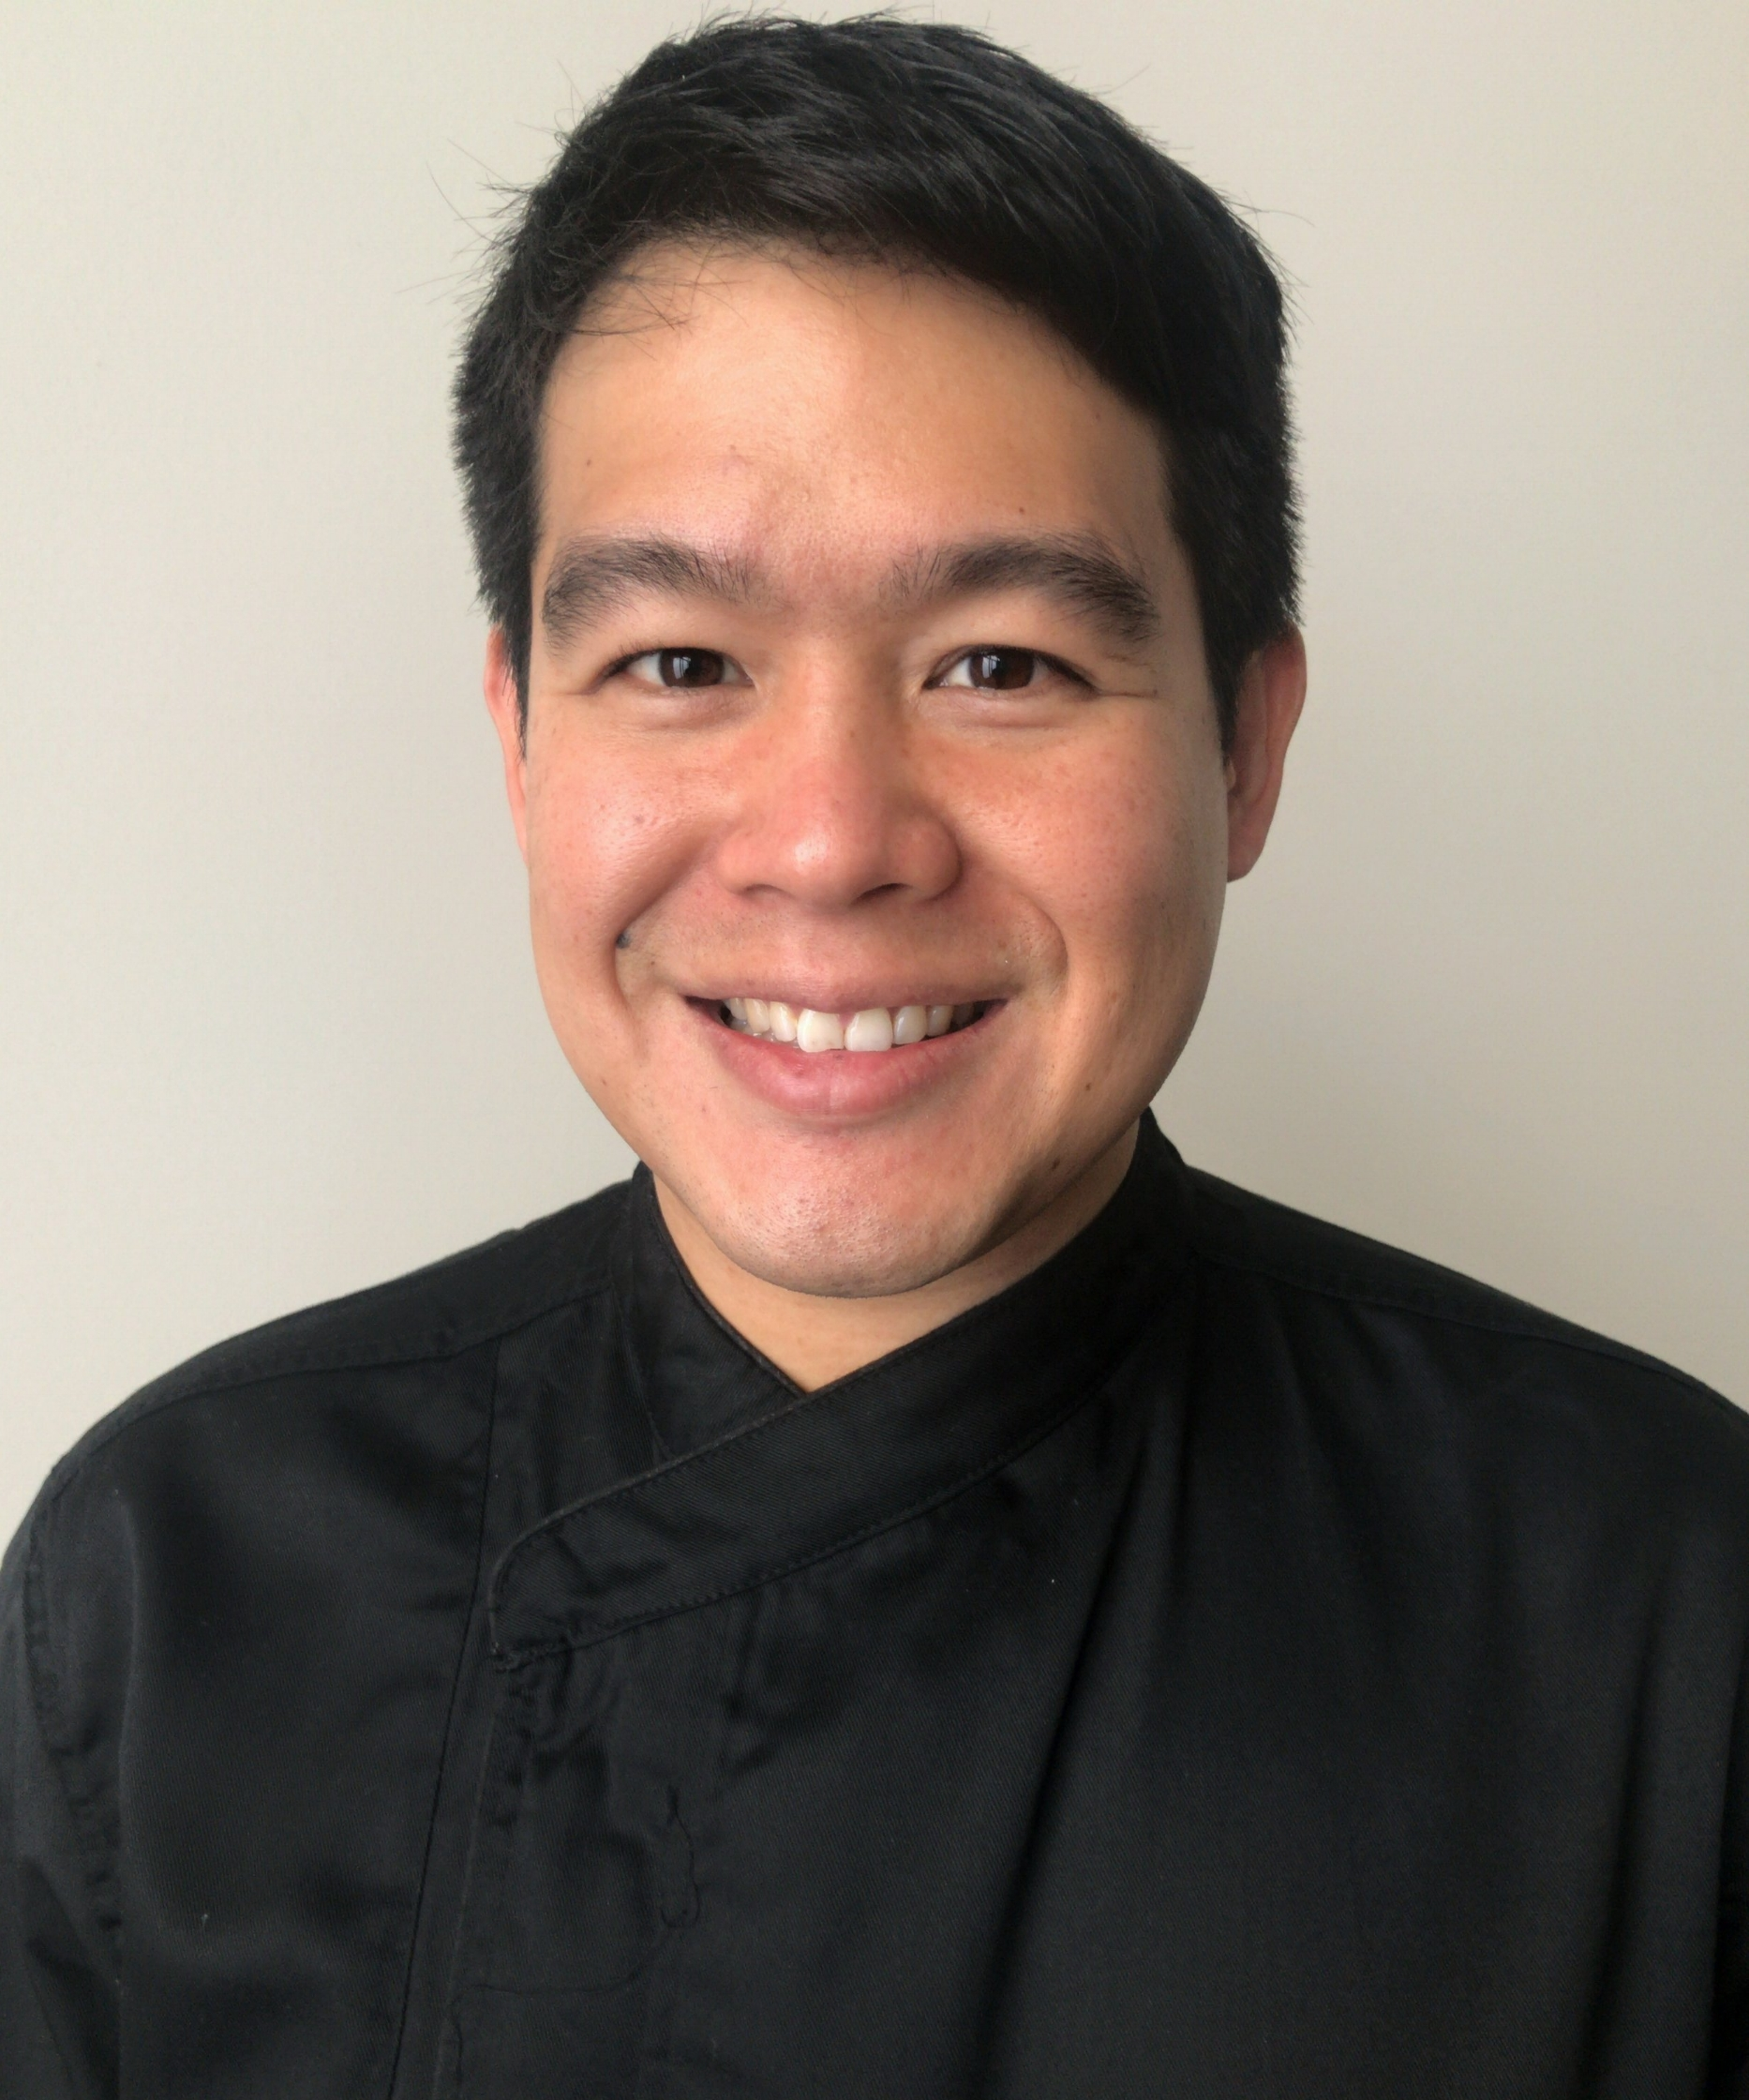 Kenn Chia - Lawyer & Founder, Butter Mafia